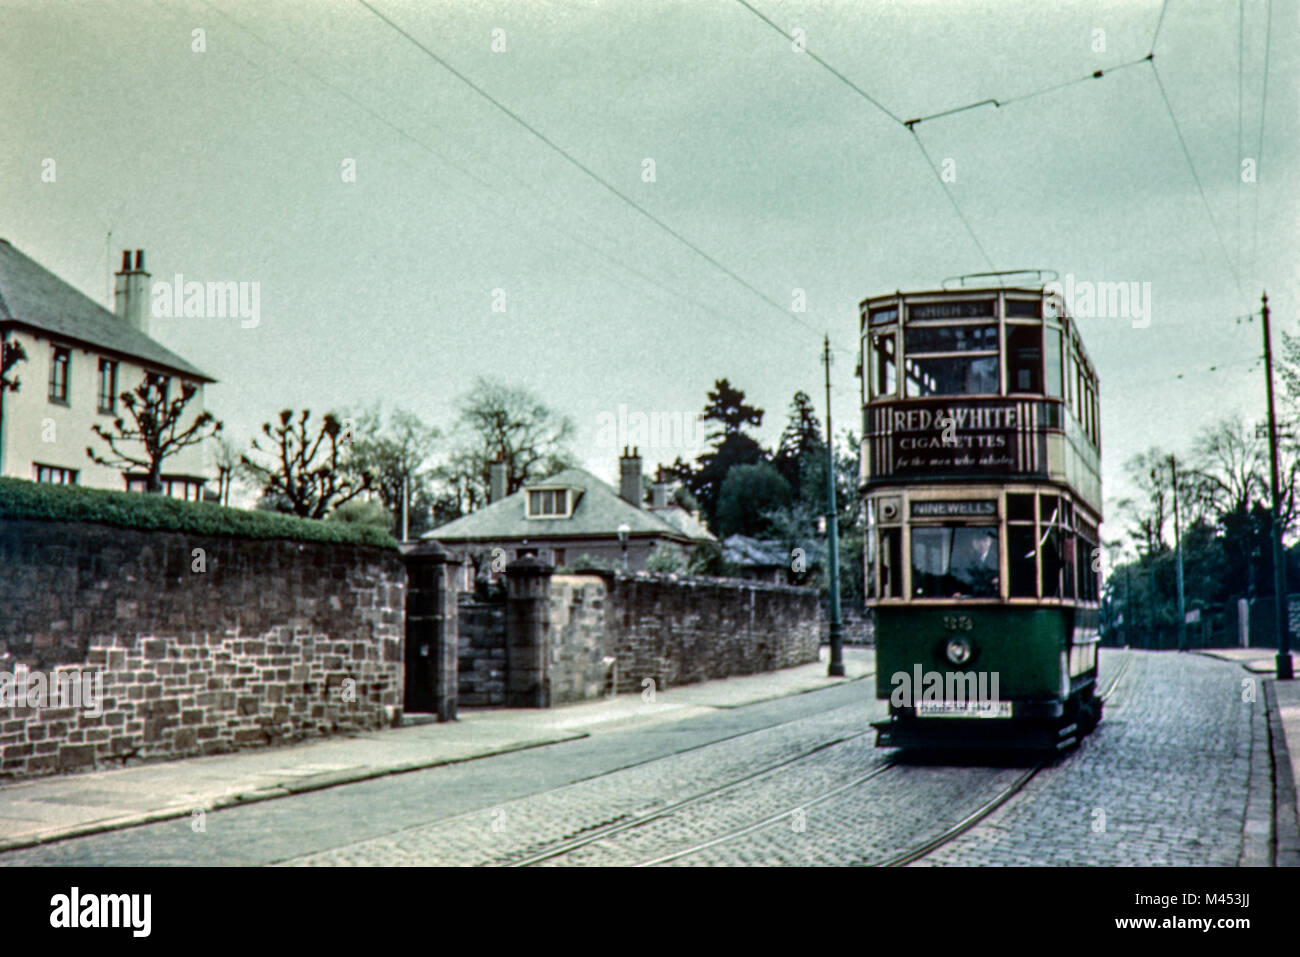 Dundee Double Decker Tram on route to Ninewells and Uniformed Services University circa 1950s - Stock Image